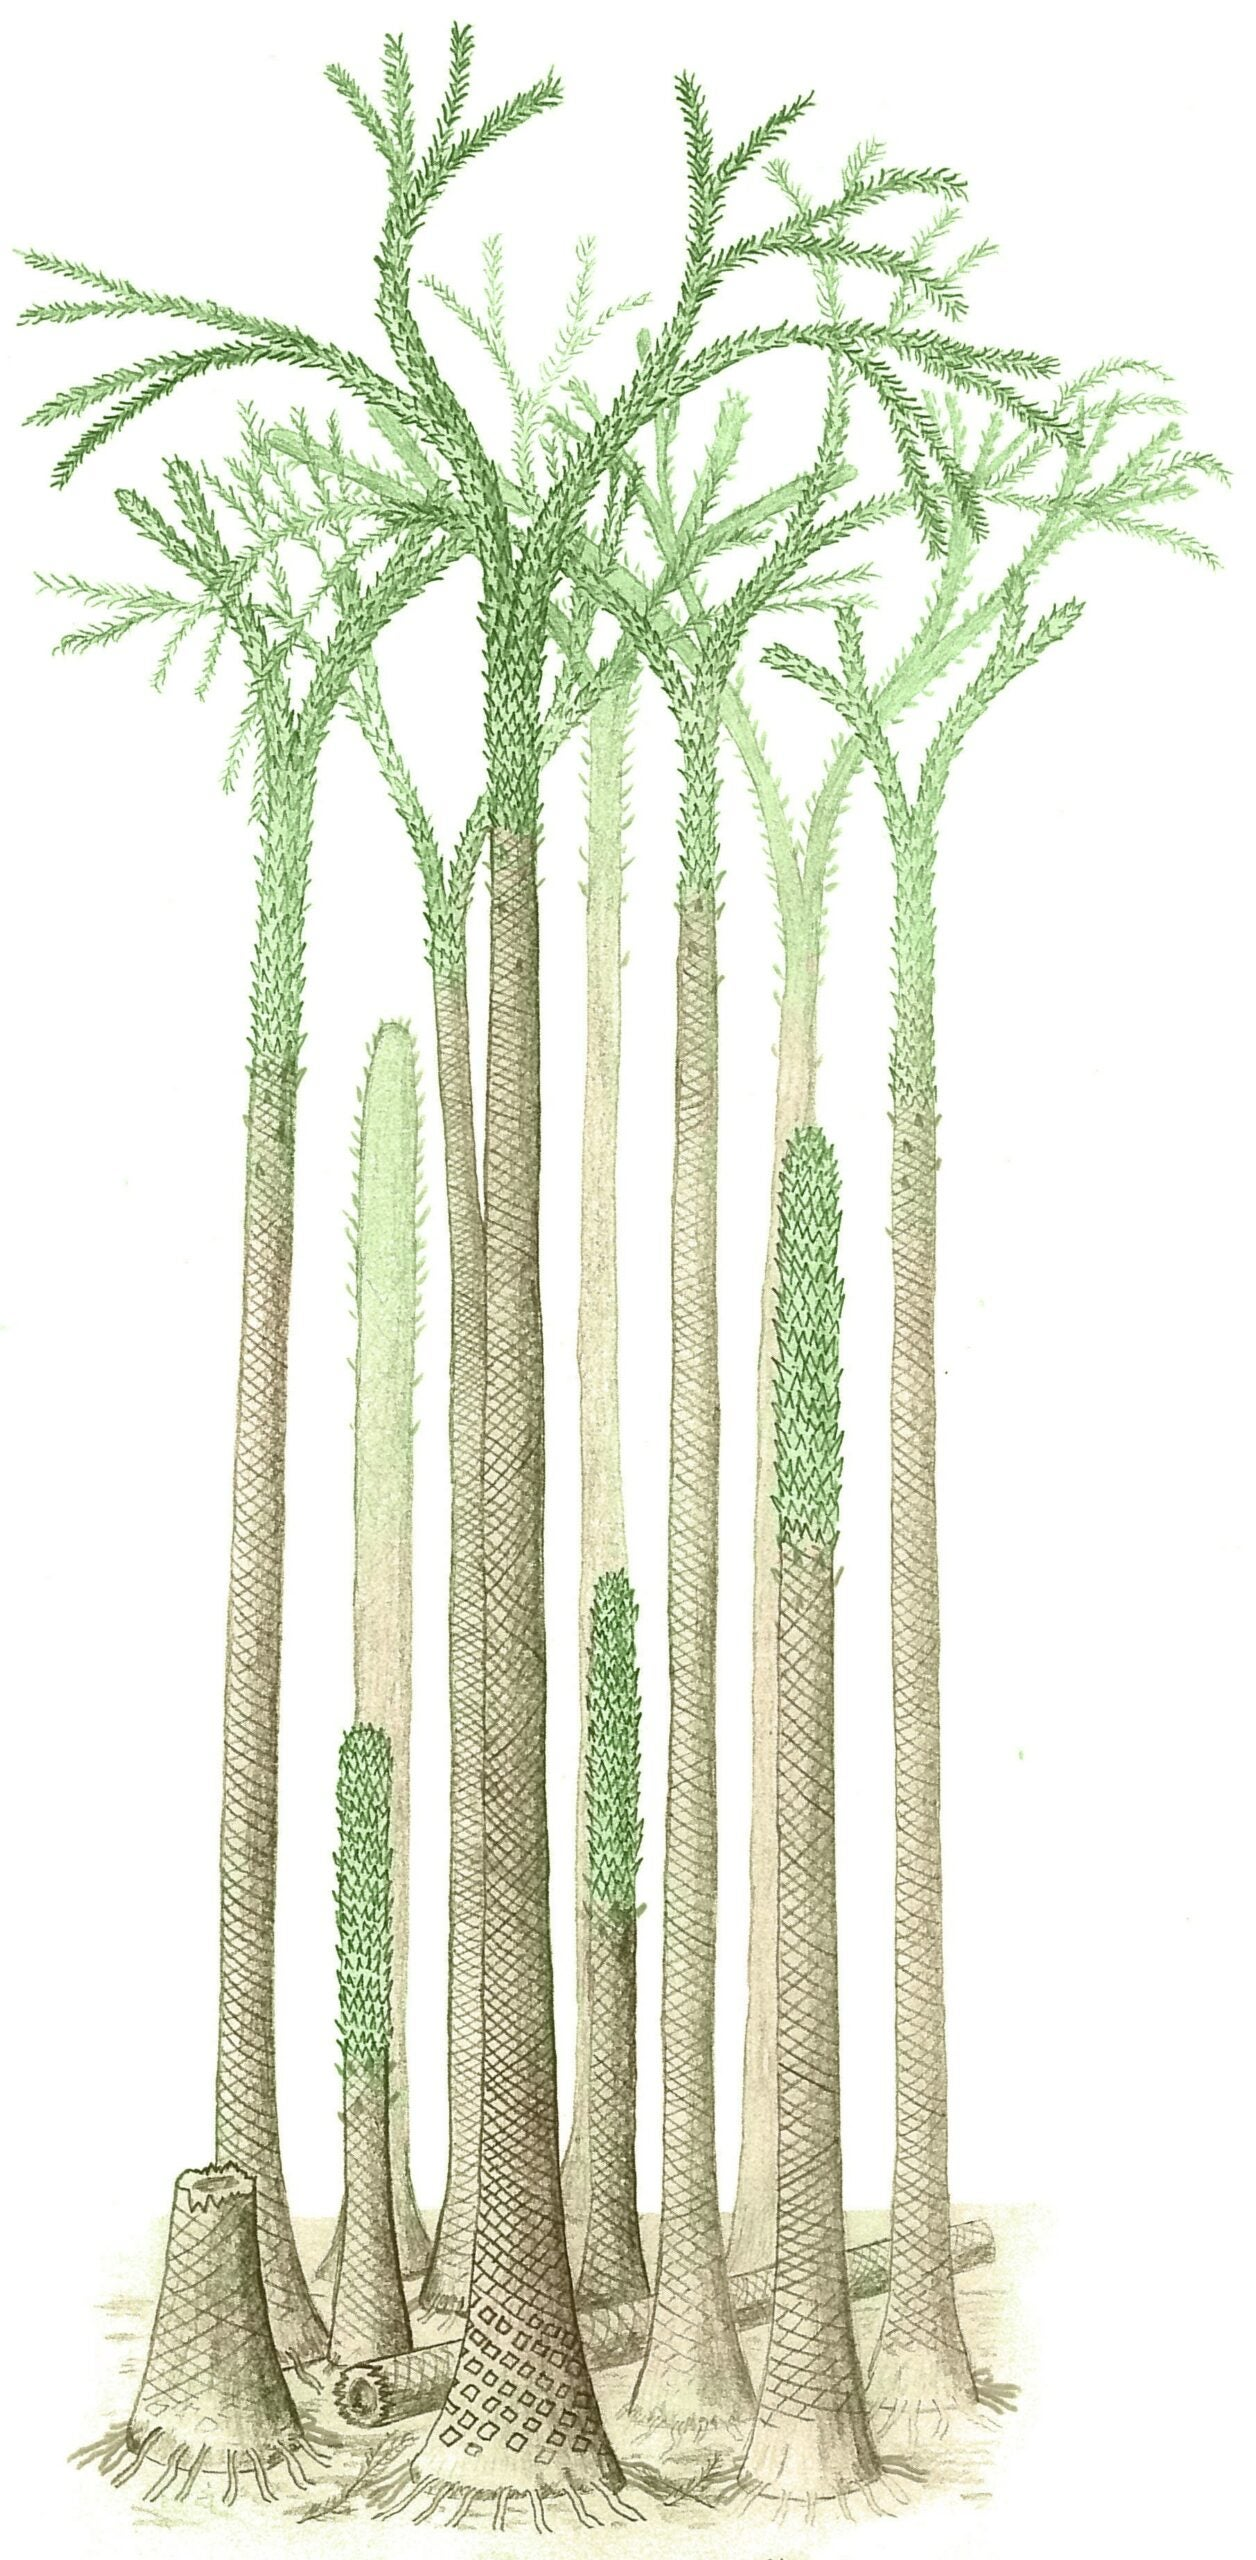 Trees in fossil forest